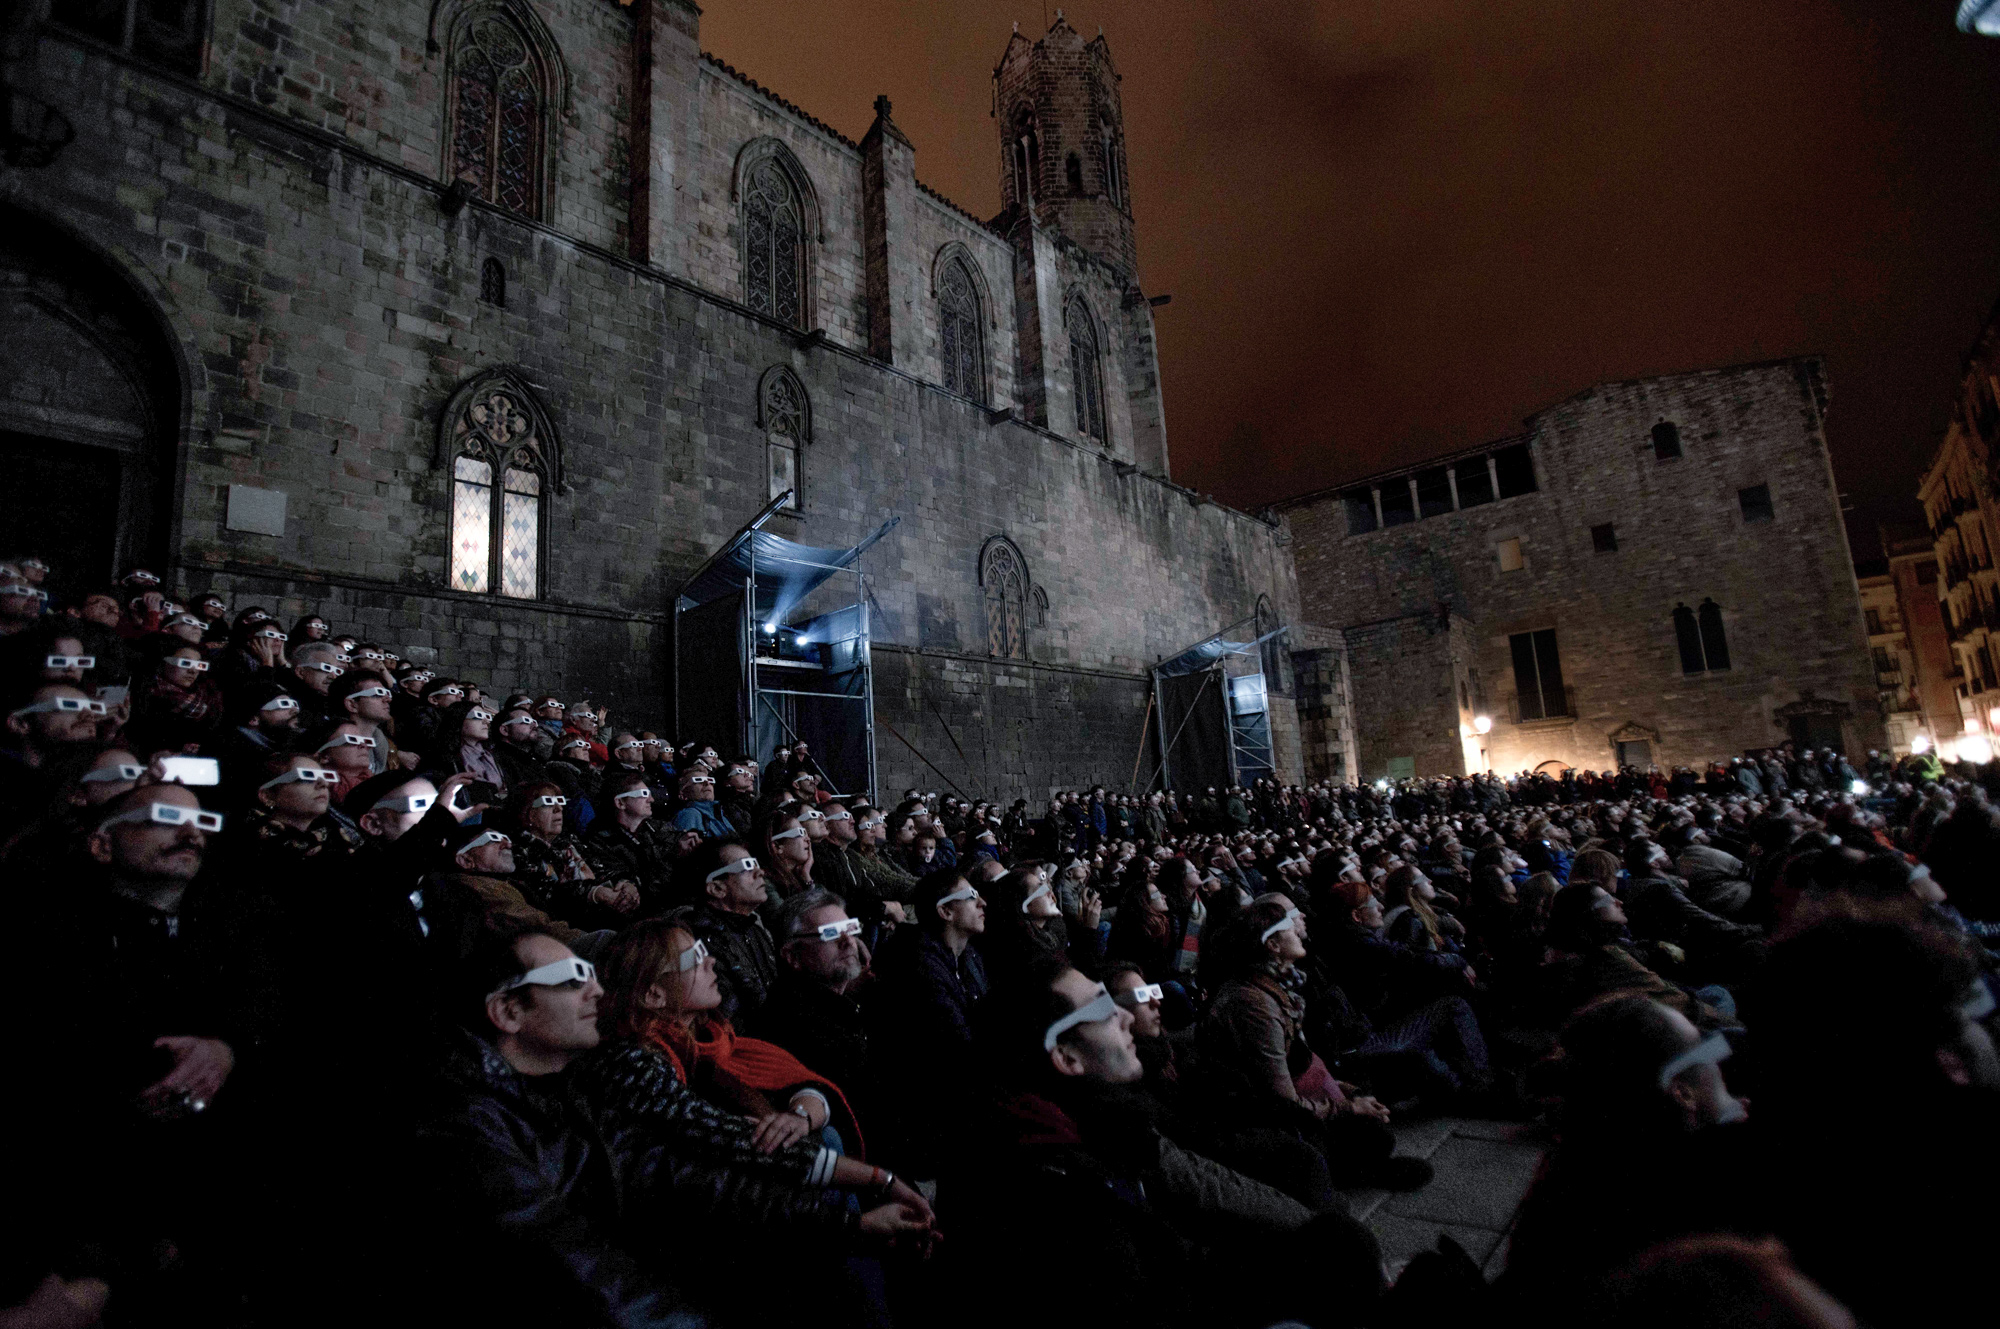 Audience attending Onionlab's 3D projection mapping show for Llum Bcn in Barcelona.